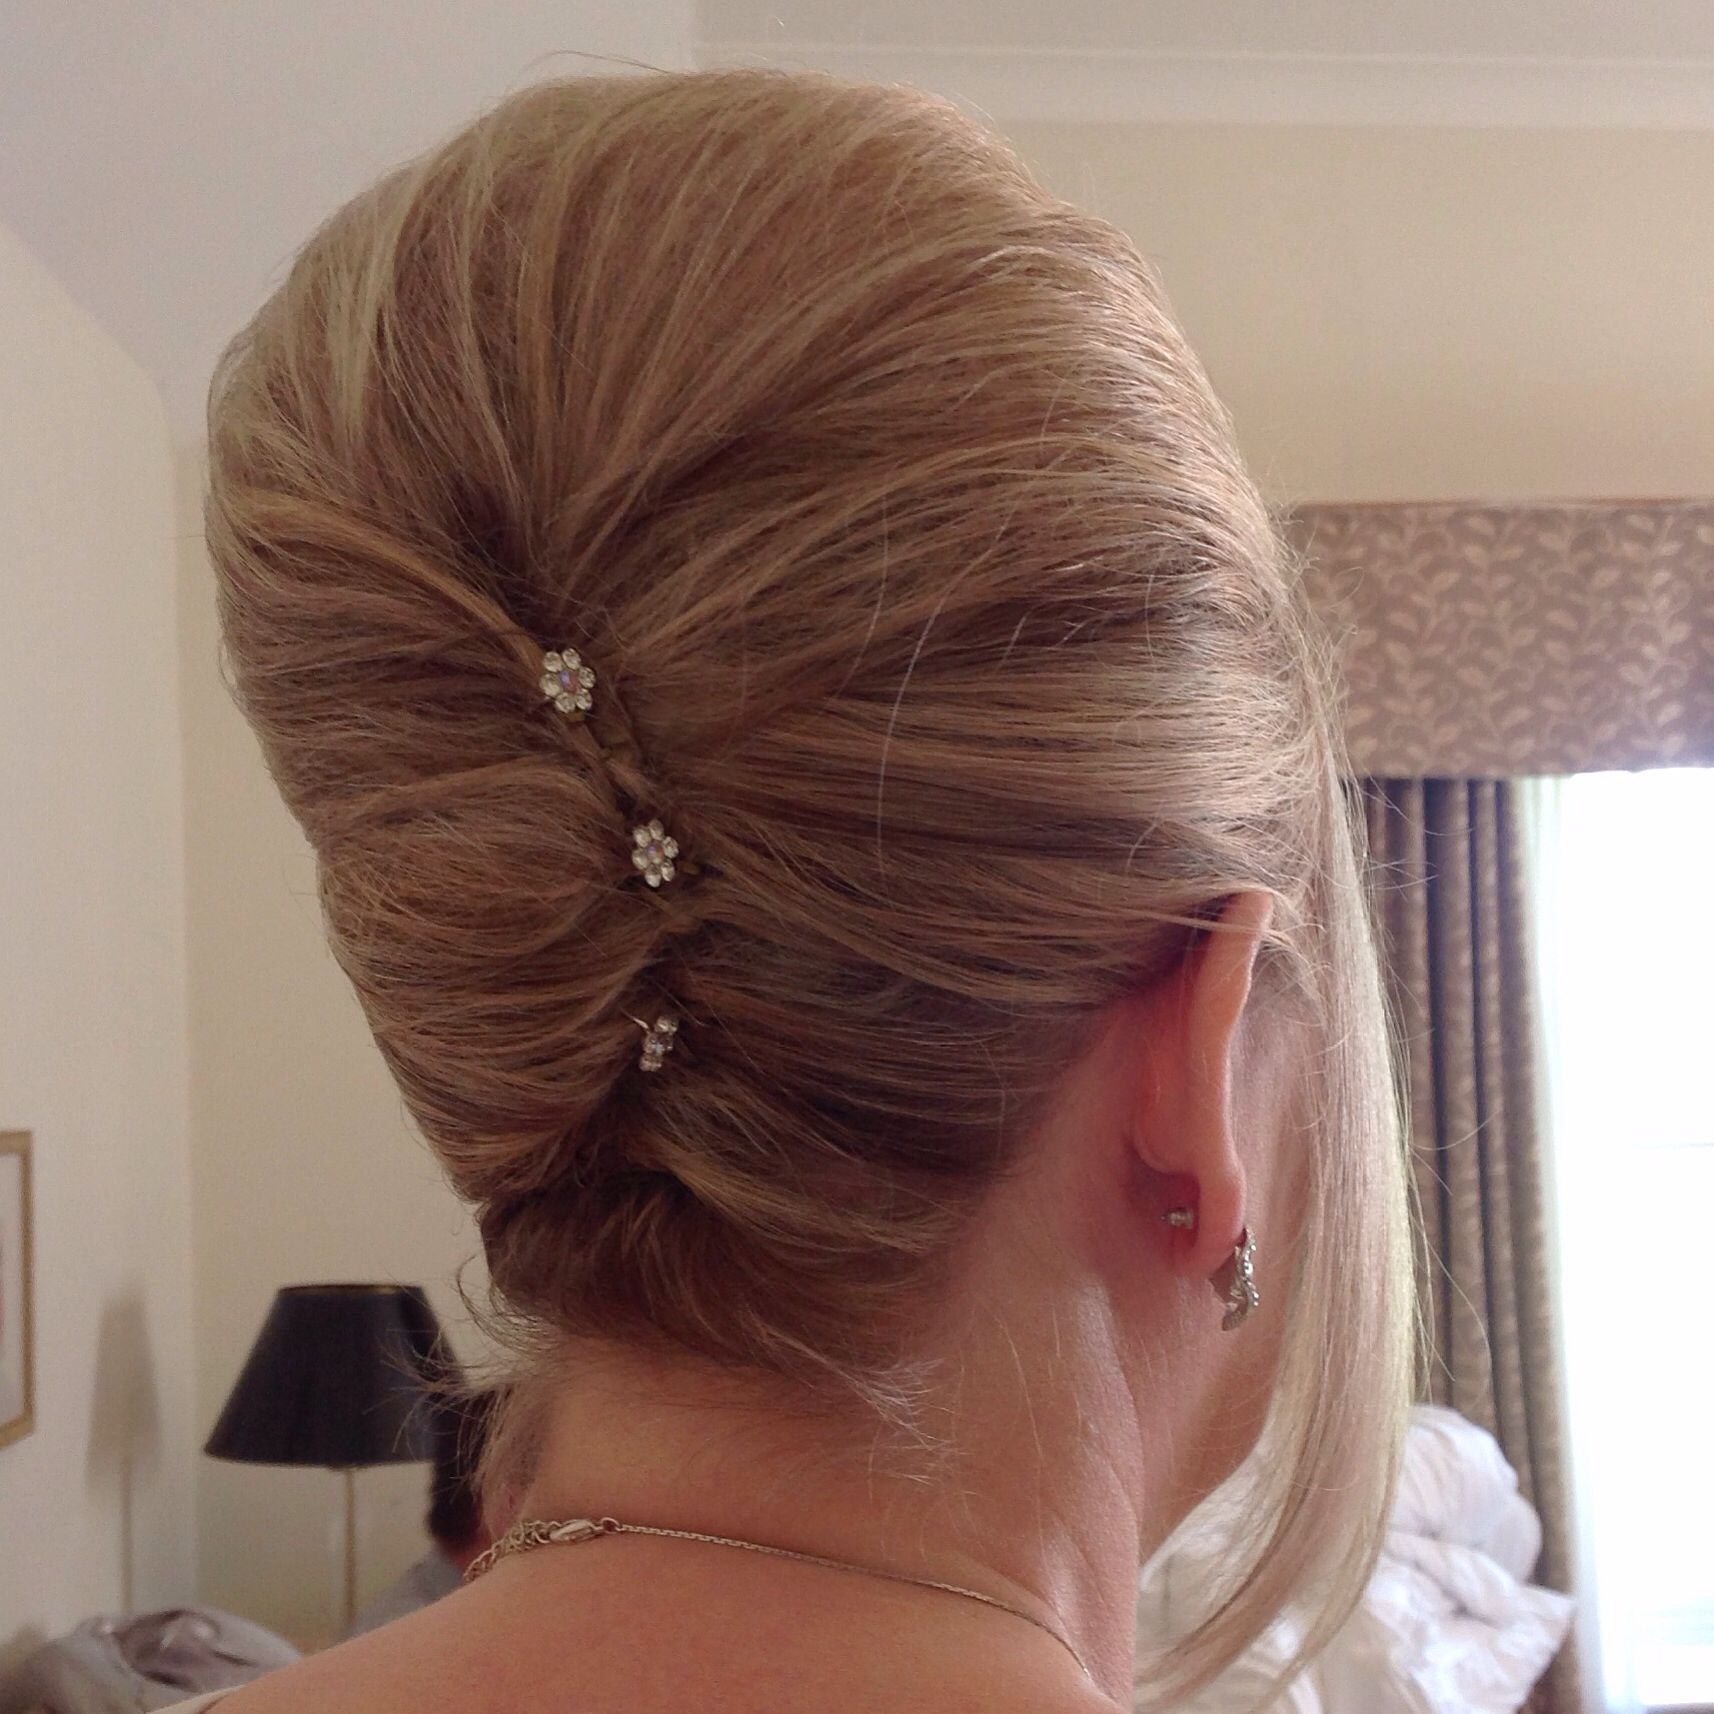 Beehive Hairstyles For Wedding: Beautiful Blonde Beehive Hair Style, Ideal For A 60's